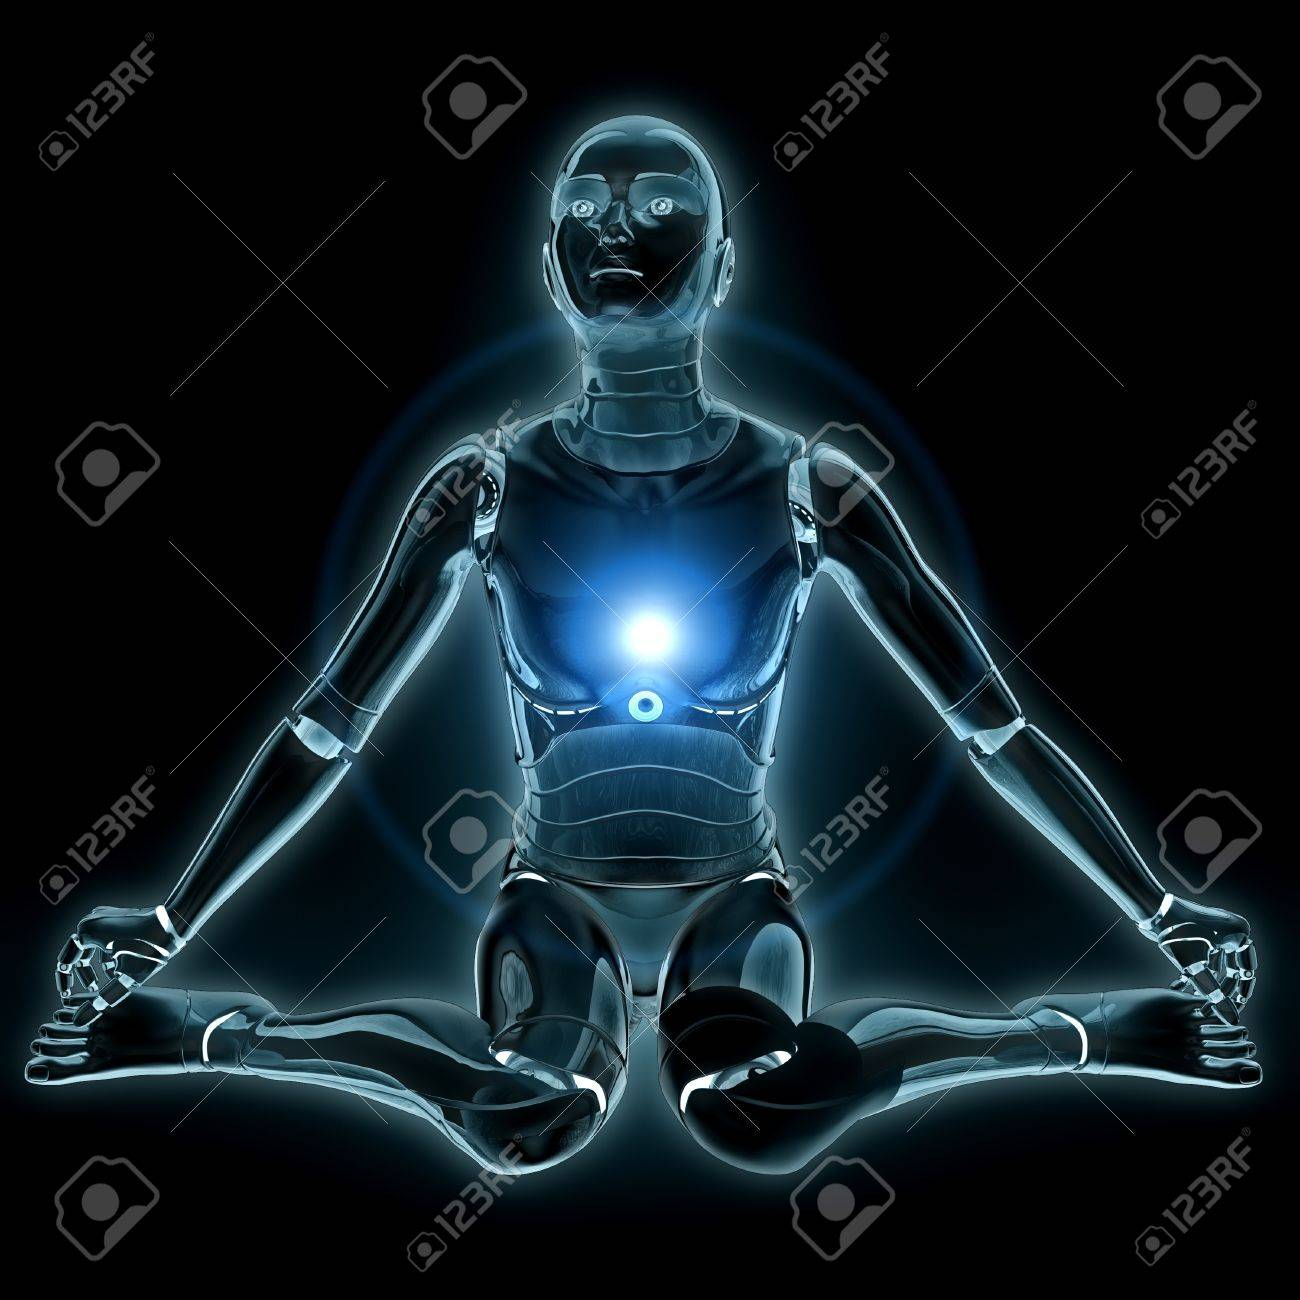 Humanoid robot glowing with flare over black background. Stock Photo - 19429561